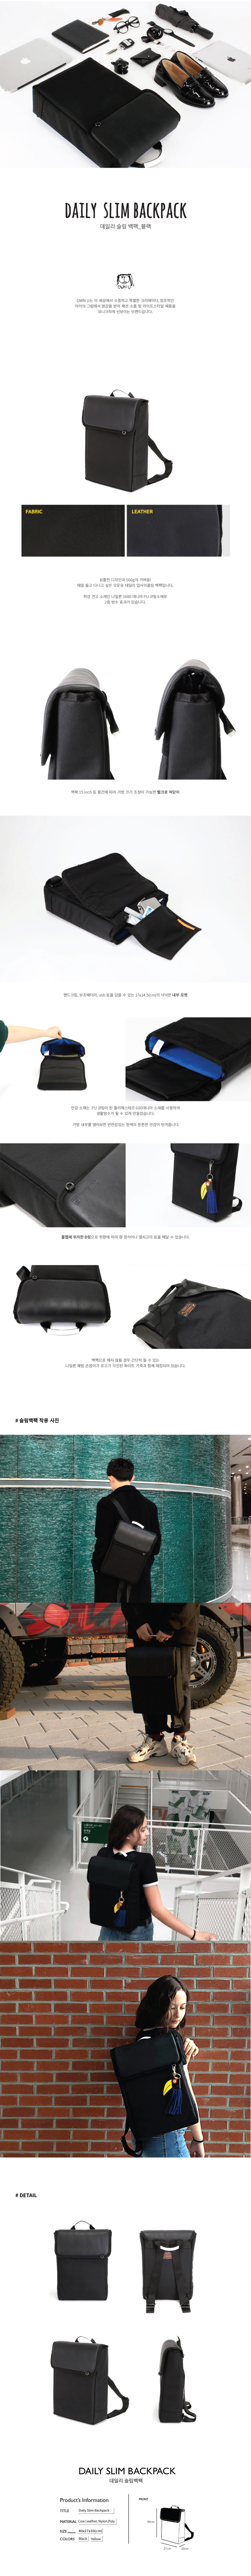 오운유(OWNU) Daily Slim Backpack (Black)